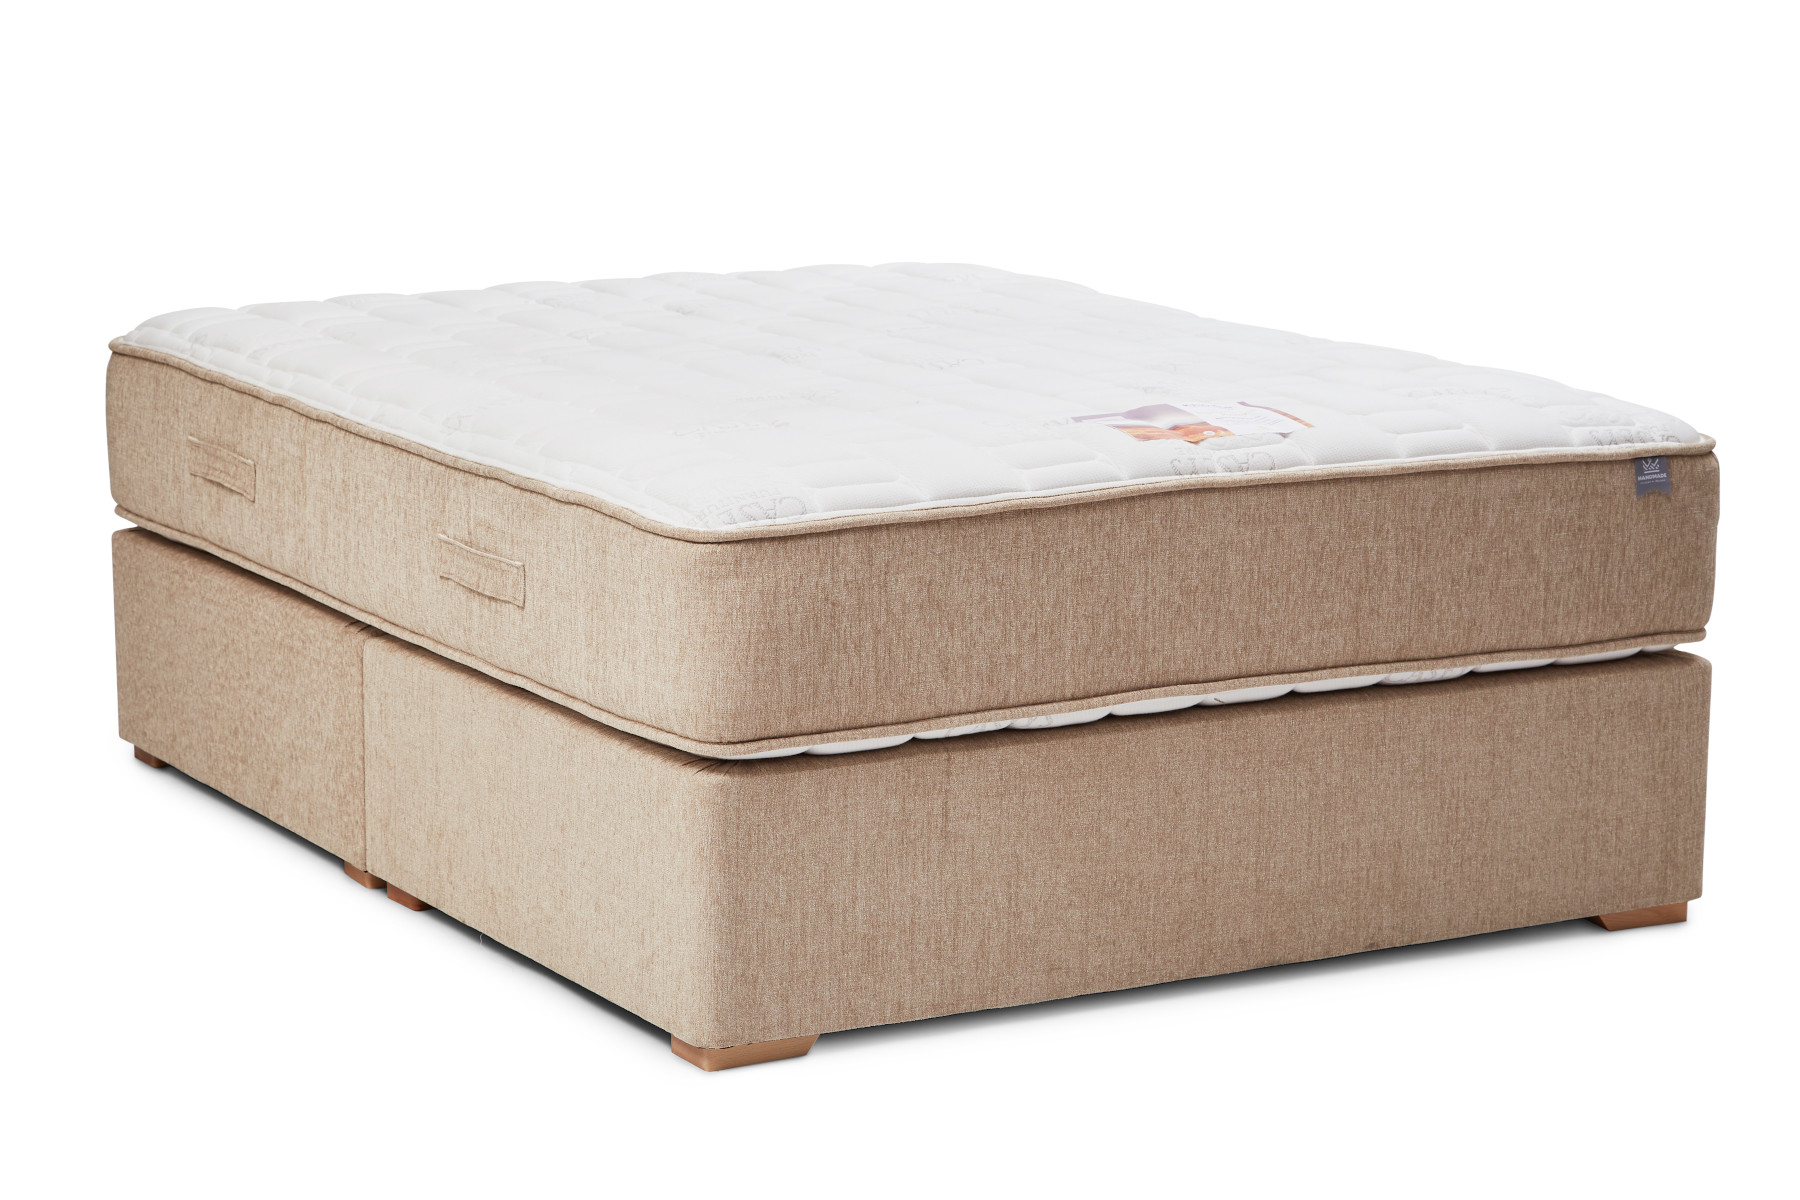 King Koil Superior Support Pocket Mattress & Divan Set